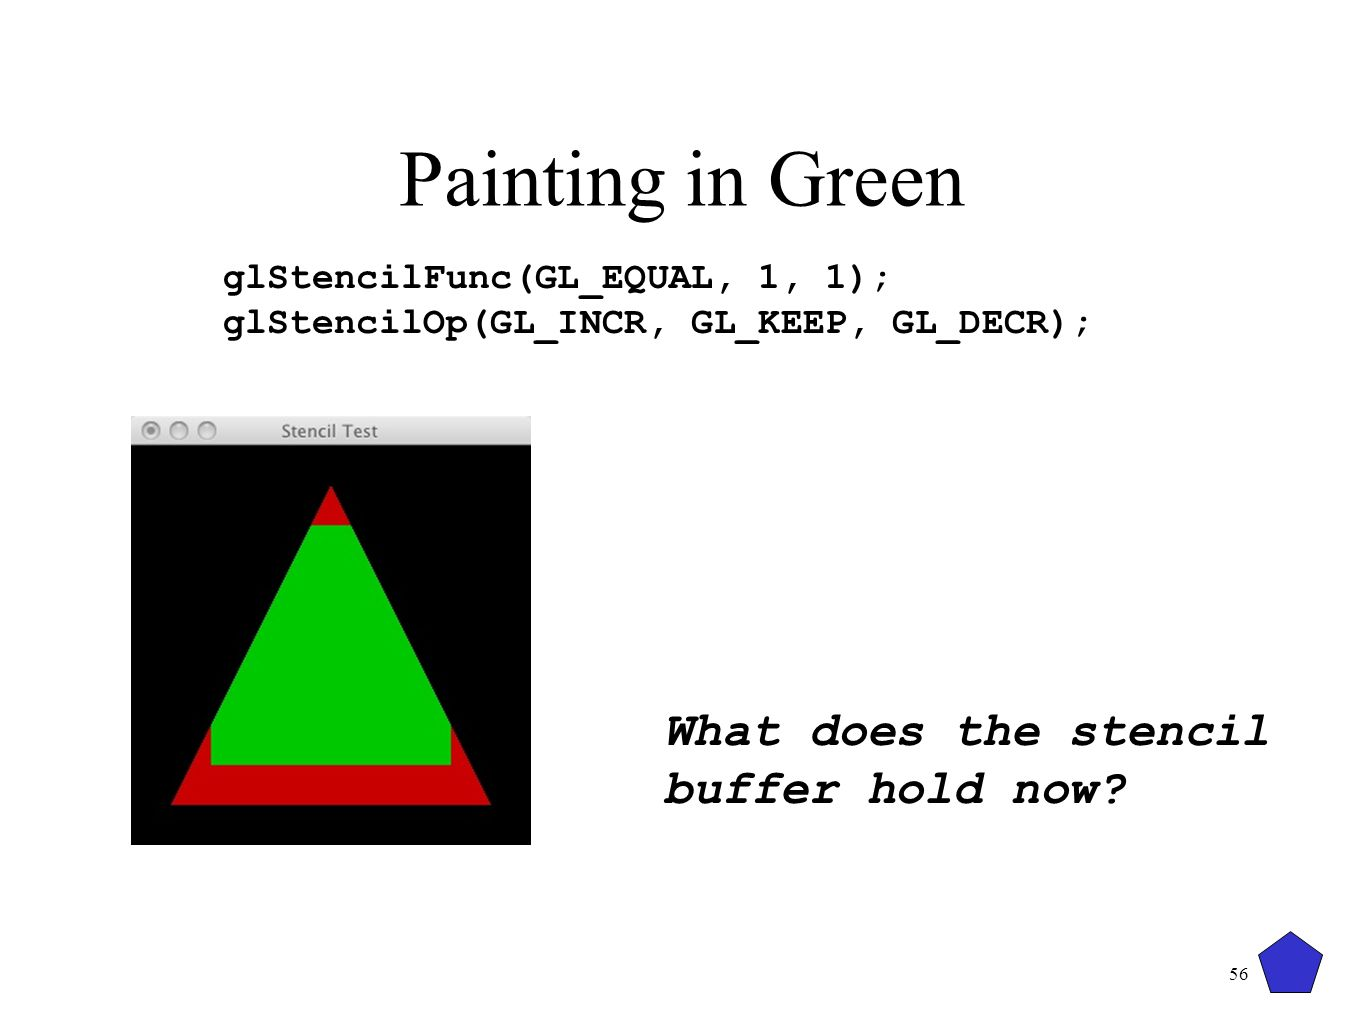 Painting in Green What does the stencil buffer hold now